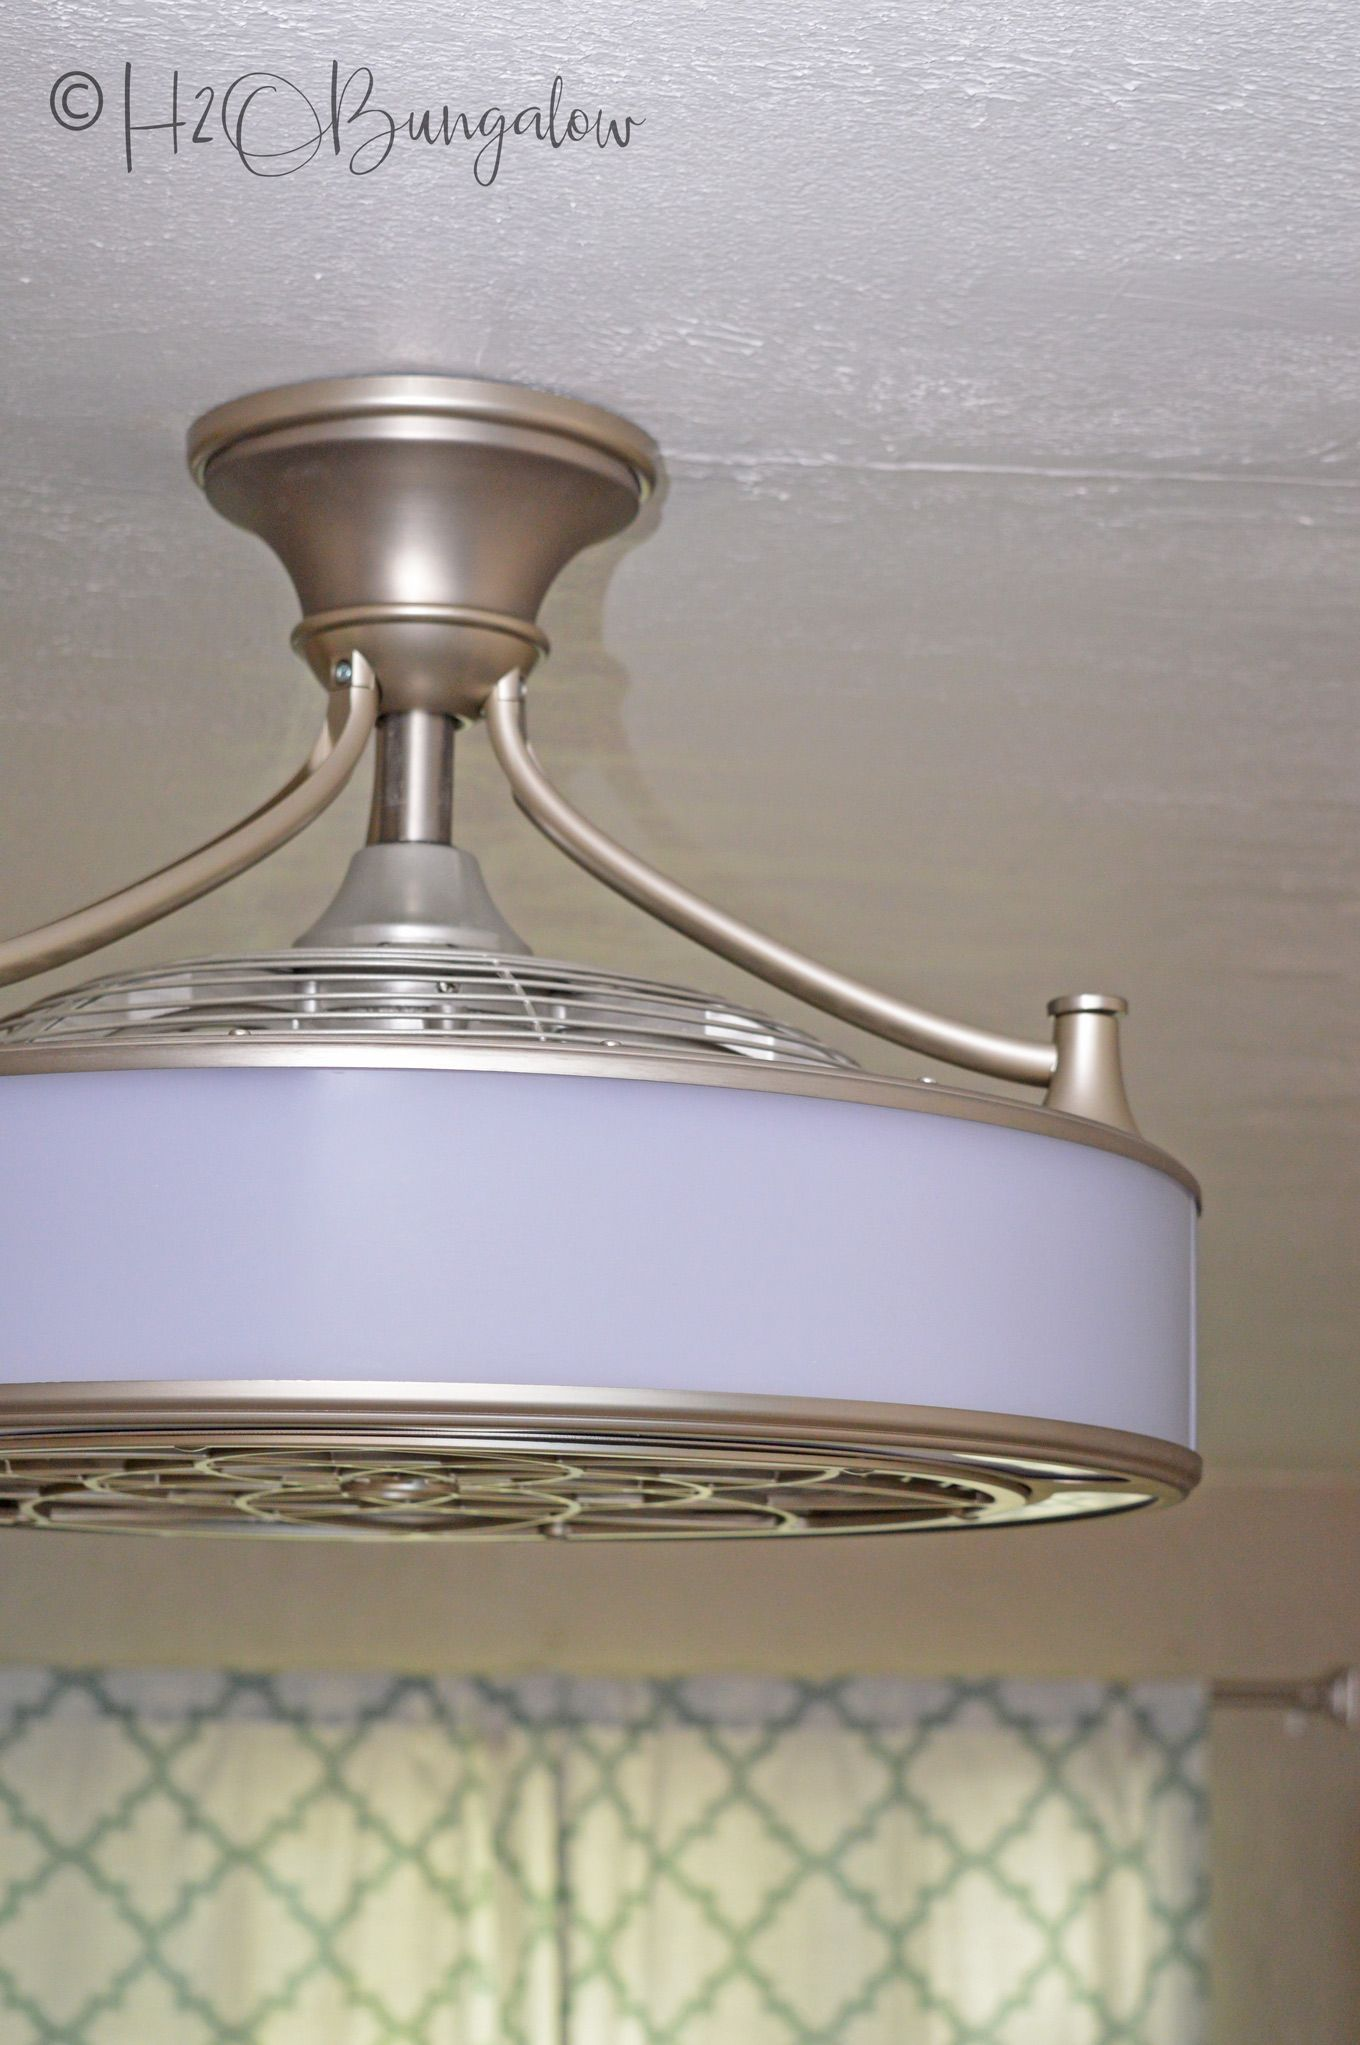 5 Important Things To Consider Before Buying Ceiling Lights And Fans H2obungalow Fan Light Fixtures Ceiling Fan Light Fixtures Ceiling Fan